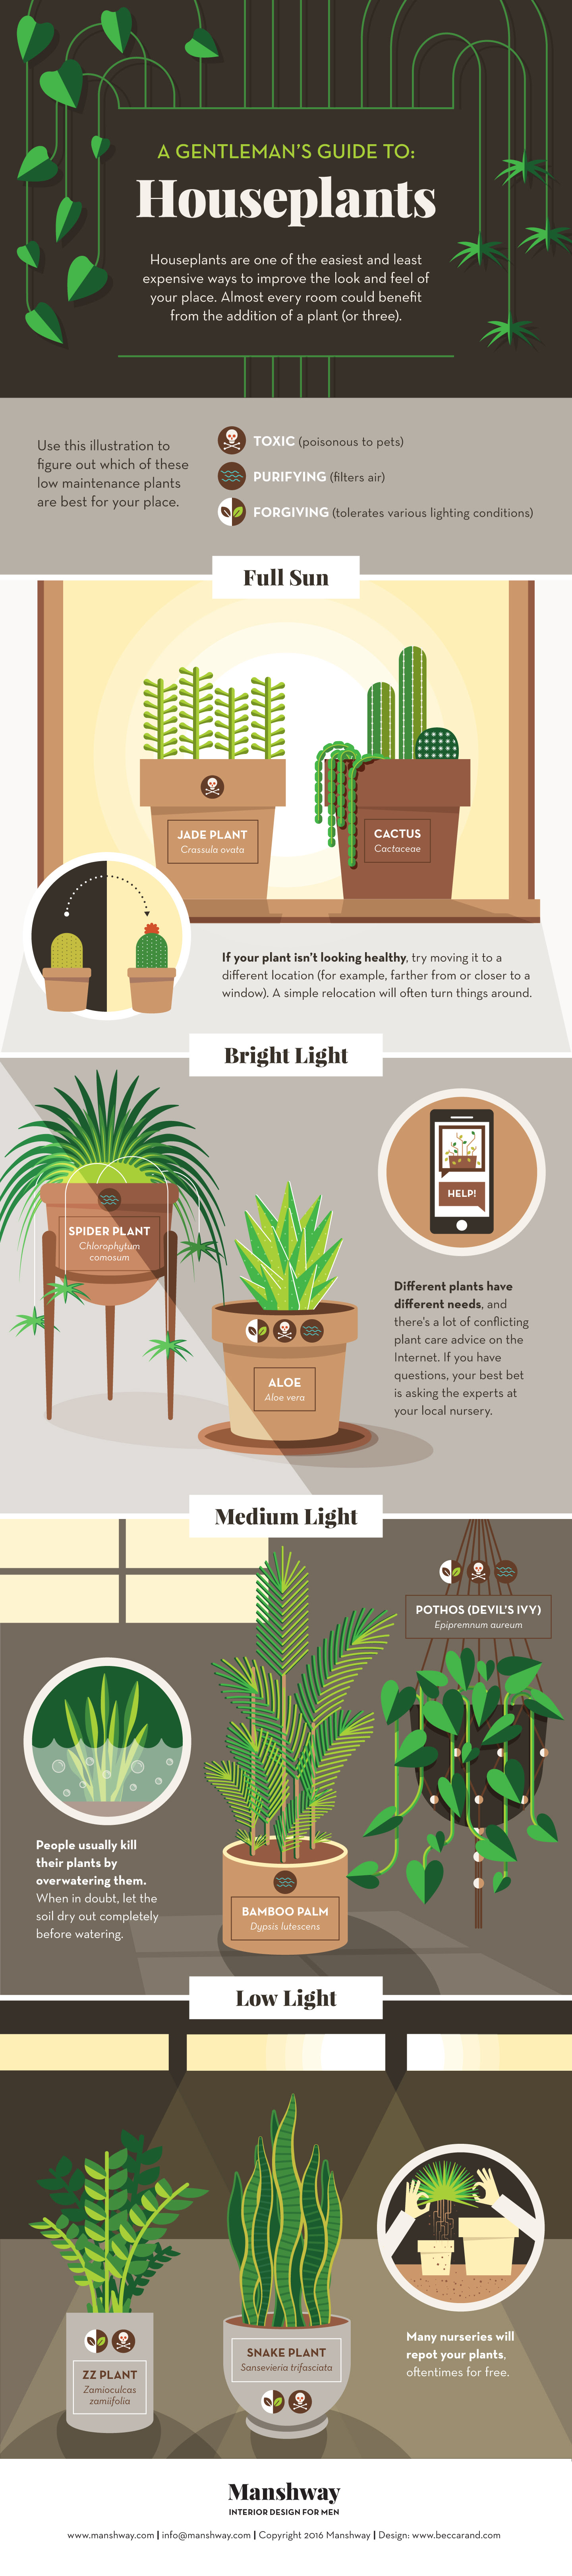 A Gentleman's Guide to Houseplants